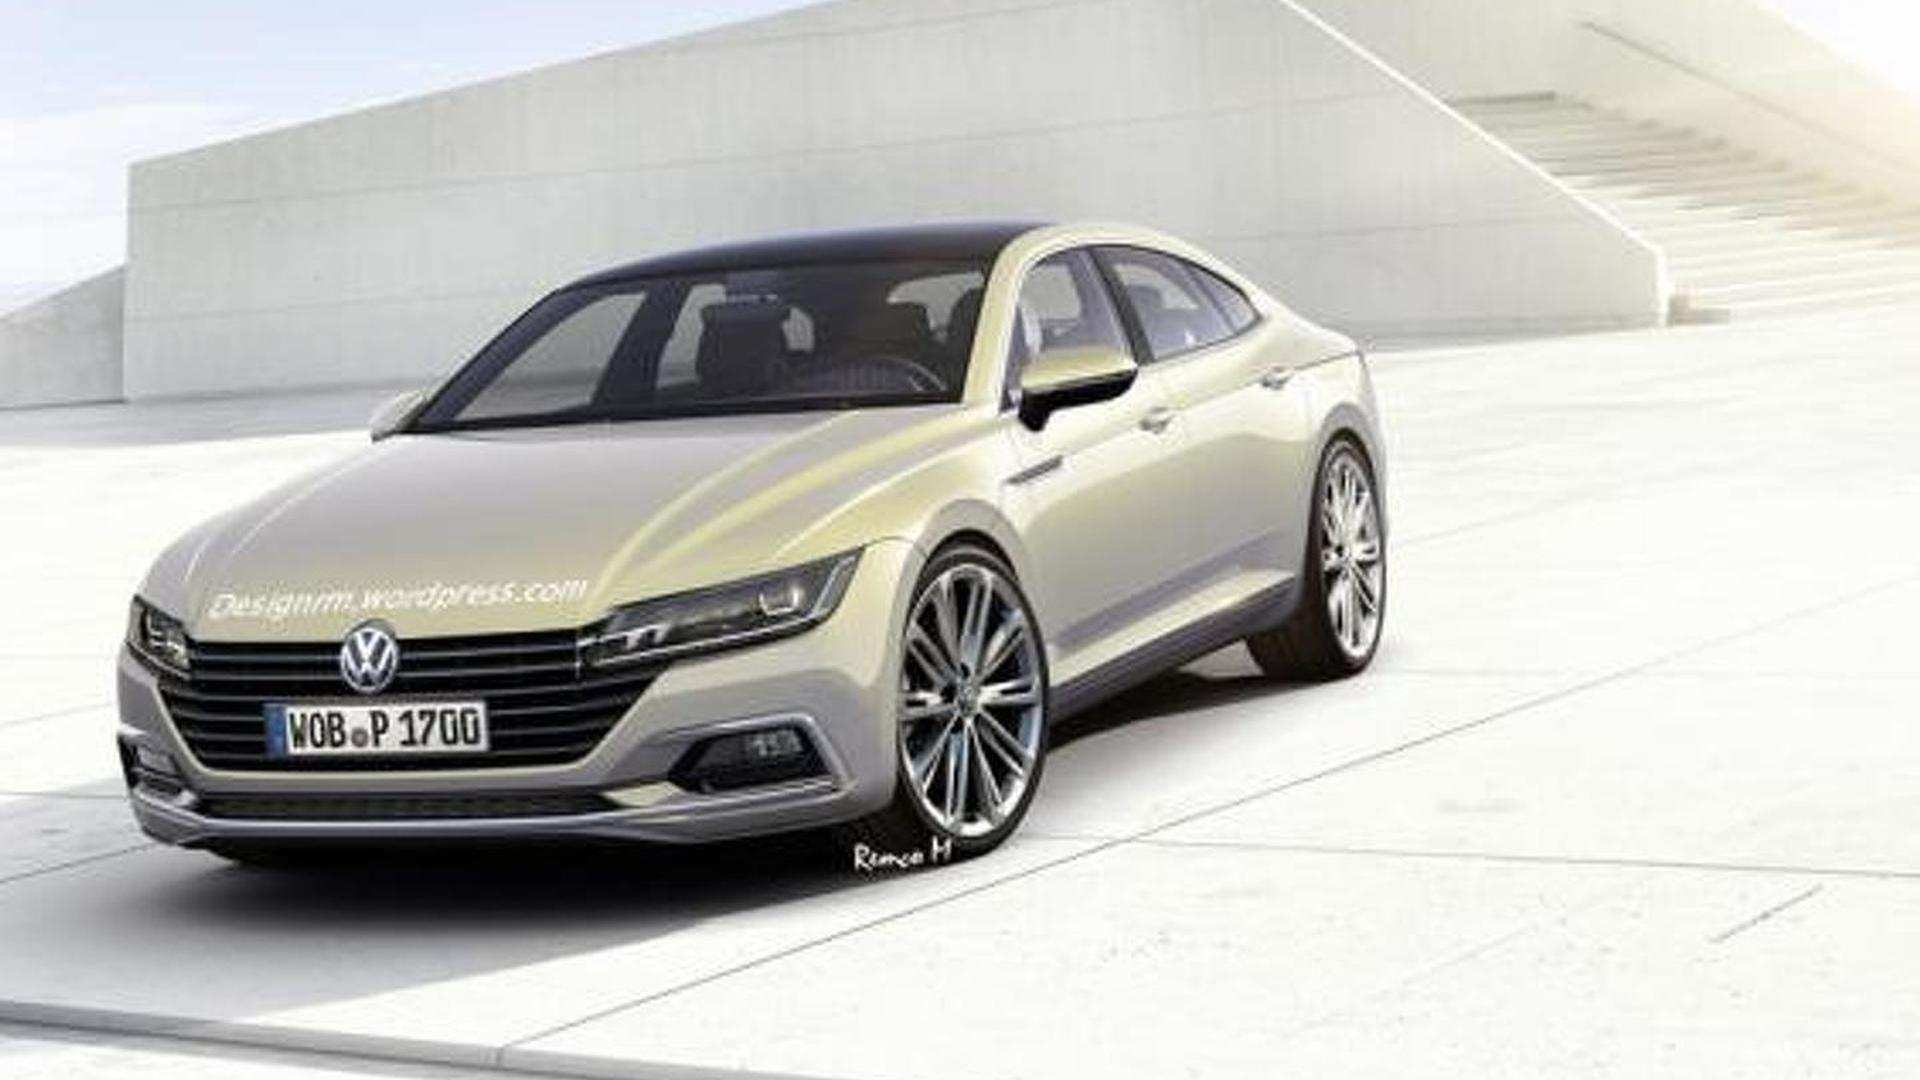 85 New Next Generation Vw Cc Price And Review